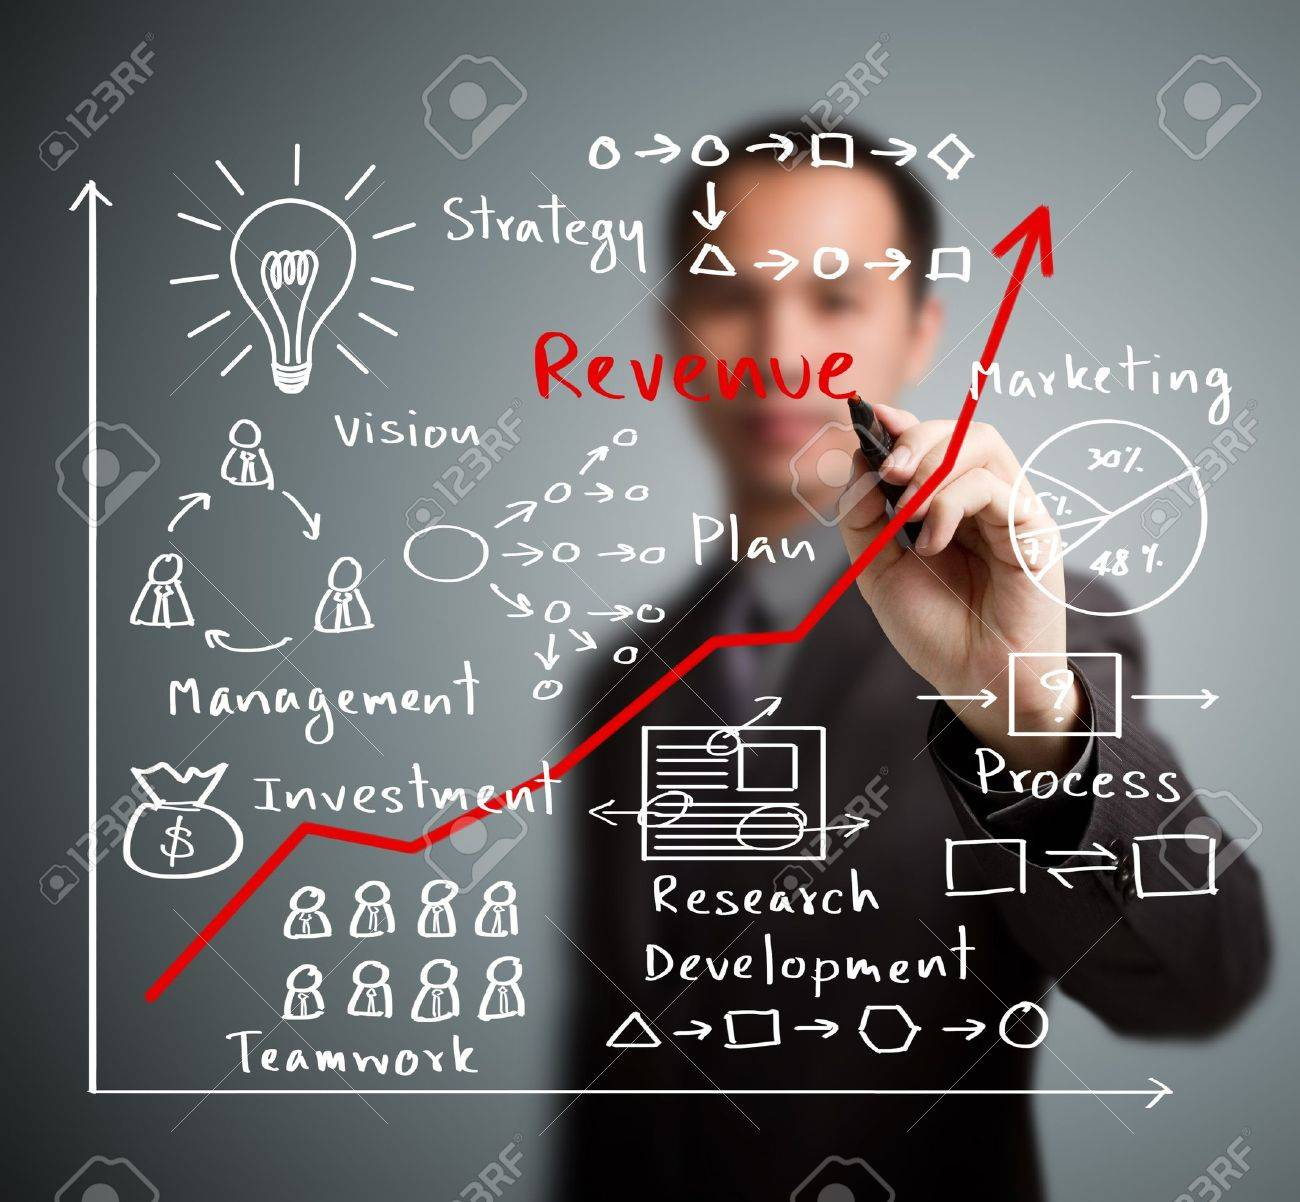 business man writing increased revenue graph with process of  vision - teamwork - plan - investment - management - research - development -  strategy -marketing Stock Photo - 15763875